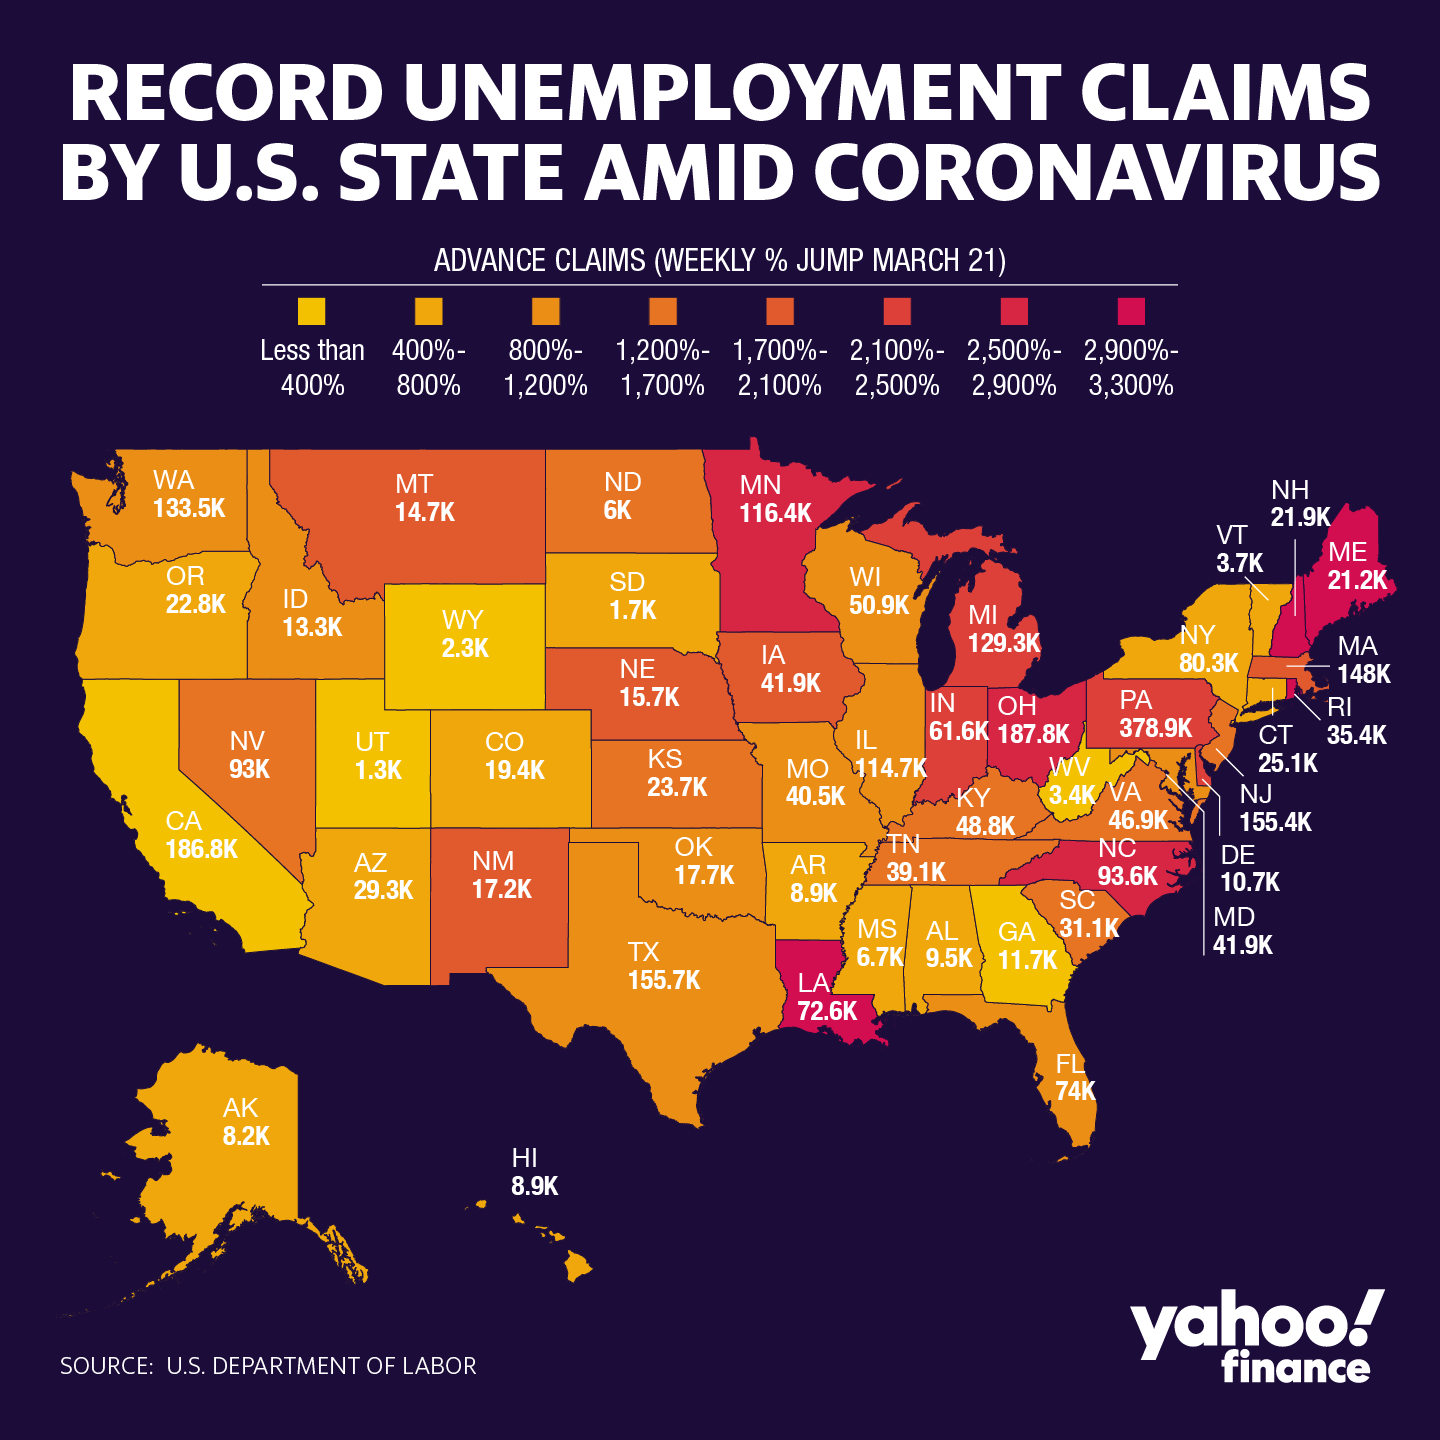 Coronavirus hit jobs in these states the hardest, according to record unemployment claims